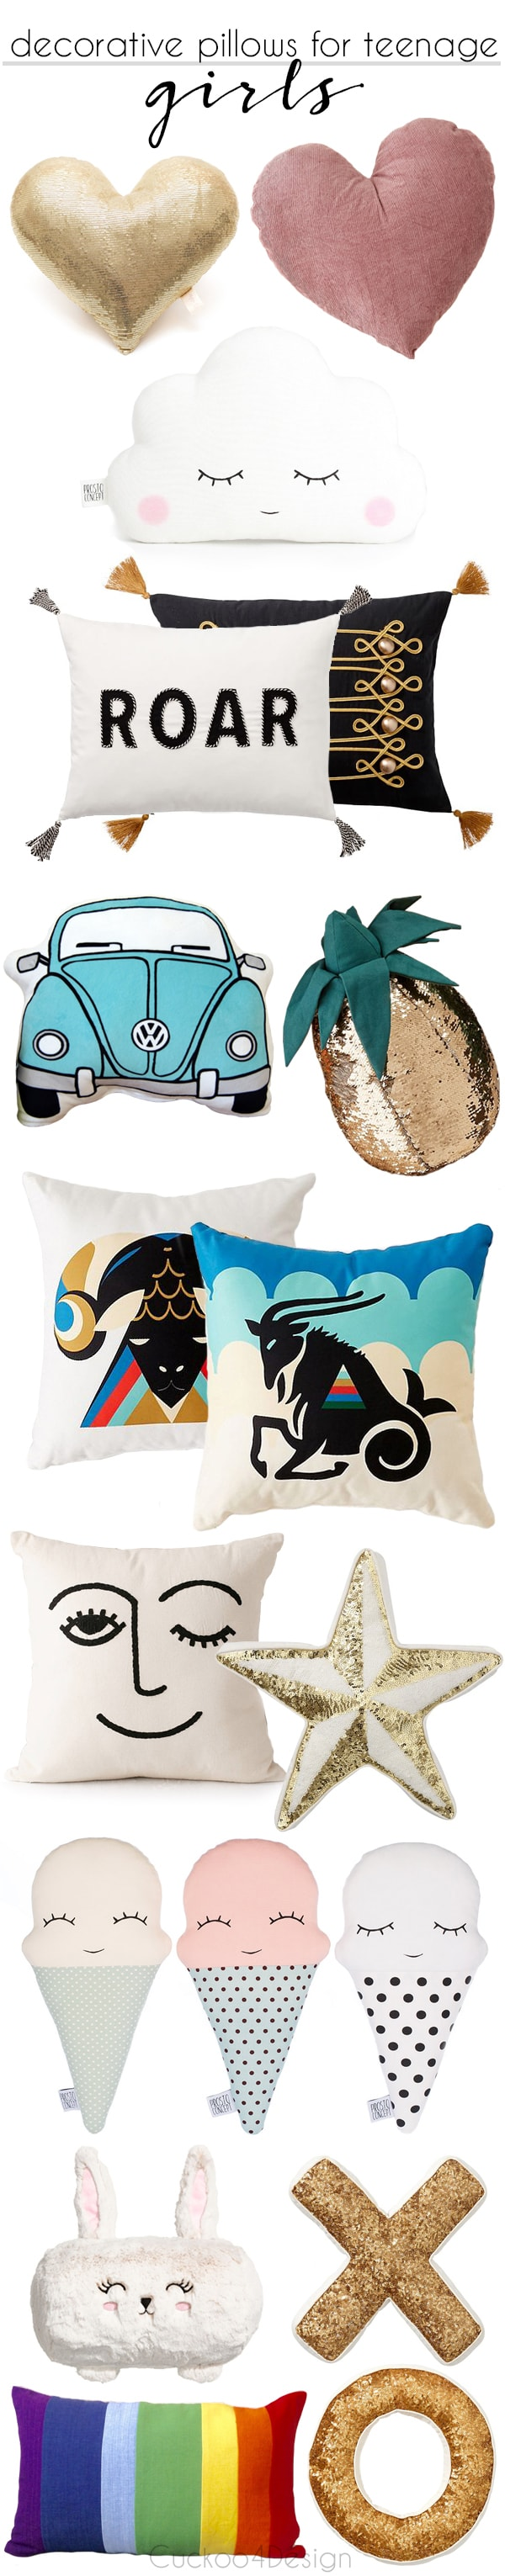 best decorative throw pillows for teenage girls | fun throw pillows | decorating for kids | decorating with teenagers | whimsical pillows | chic accent pillows for girls and teen girls bedroom decoration | Fun Girl's Bedroom Decor Ideas | Cute Room Decorating for Girls |  girl room decoration | girl room themes for tweens | teenage girl room decor ideas